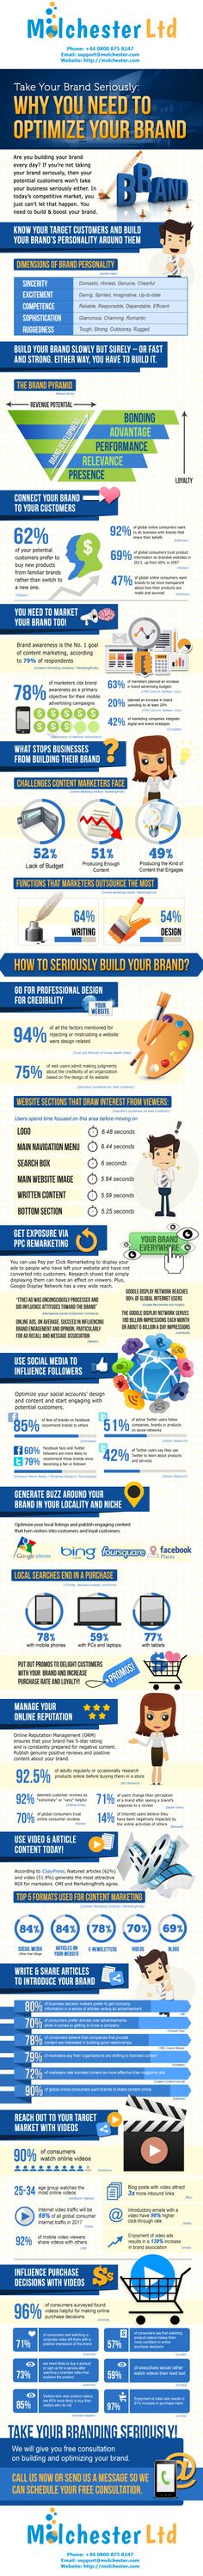 Take Your Brand Seriously: Why You Need to Optimize Your Brand [Infographic]